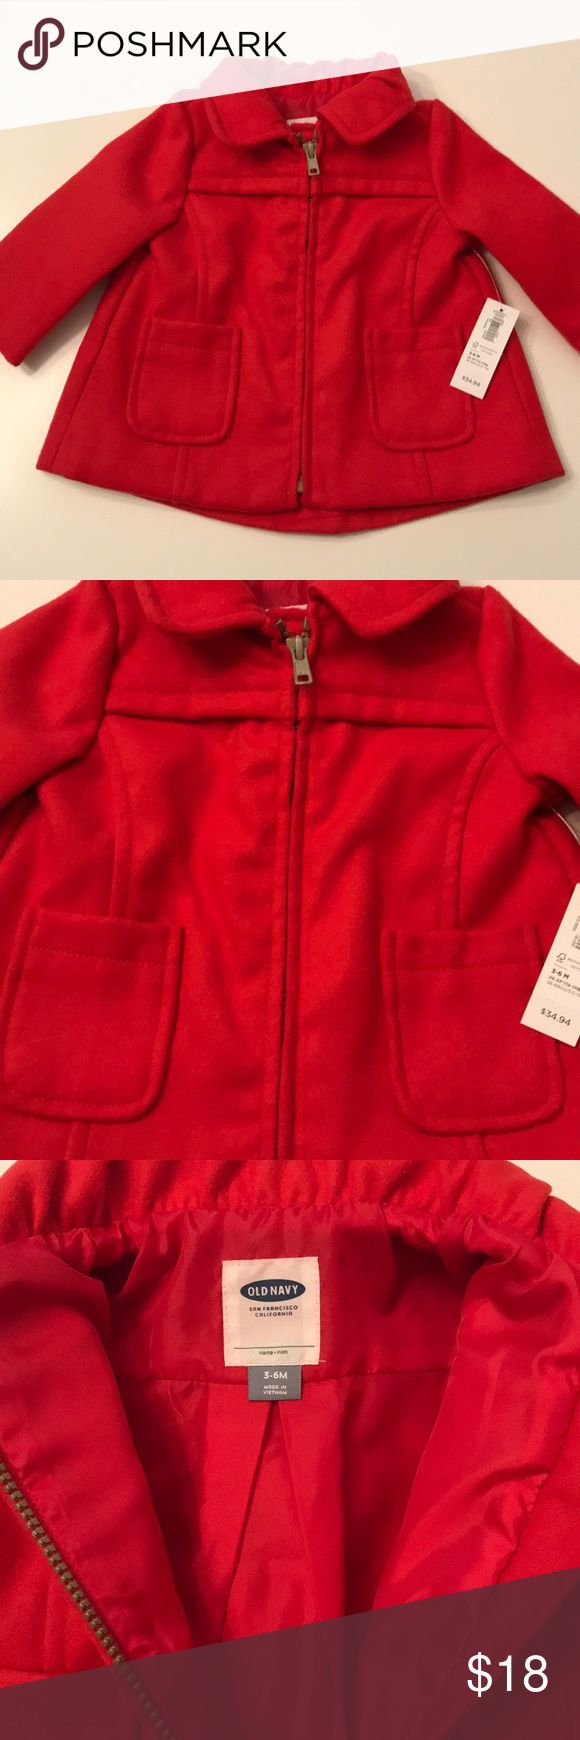 Infant Pea Coat NWT red pea coat. Lined. Never worn and in perfect condition. Old Navy Jackets & Coats Pea Coats